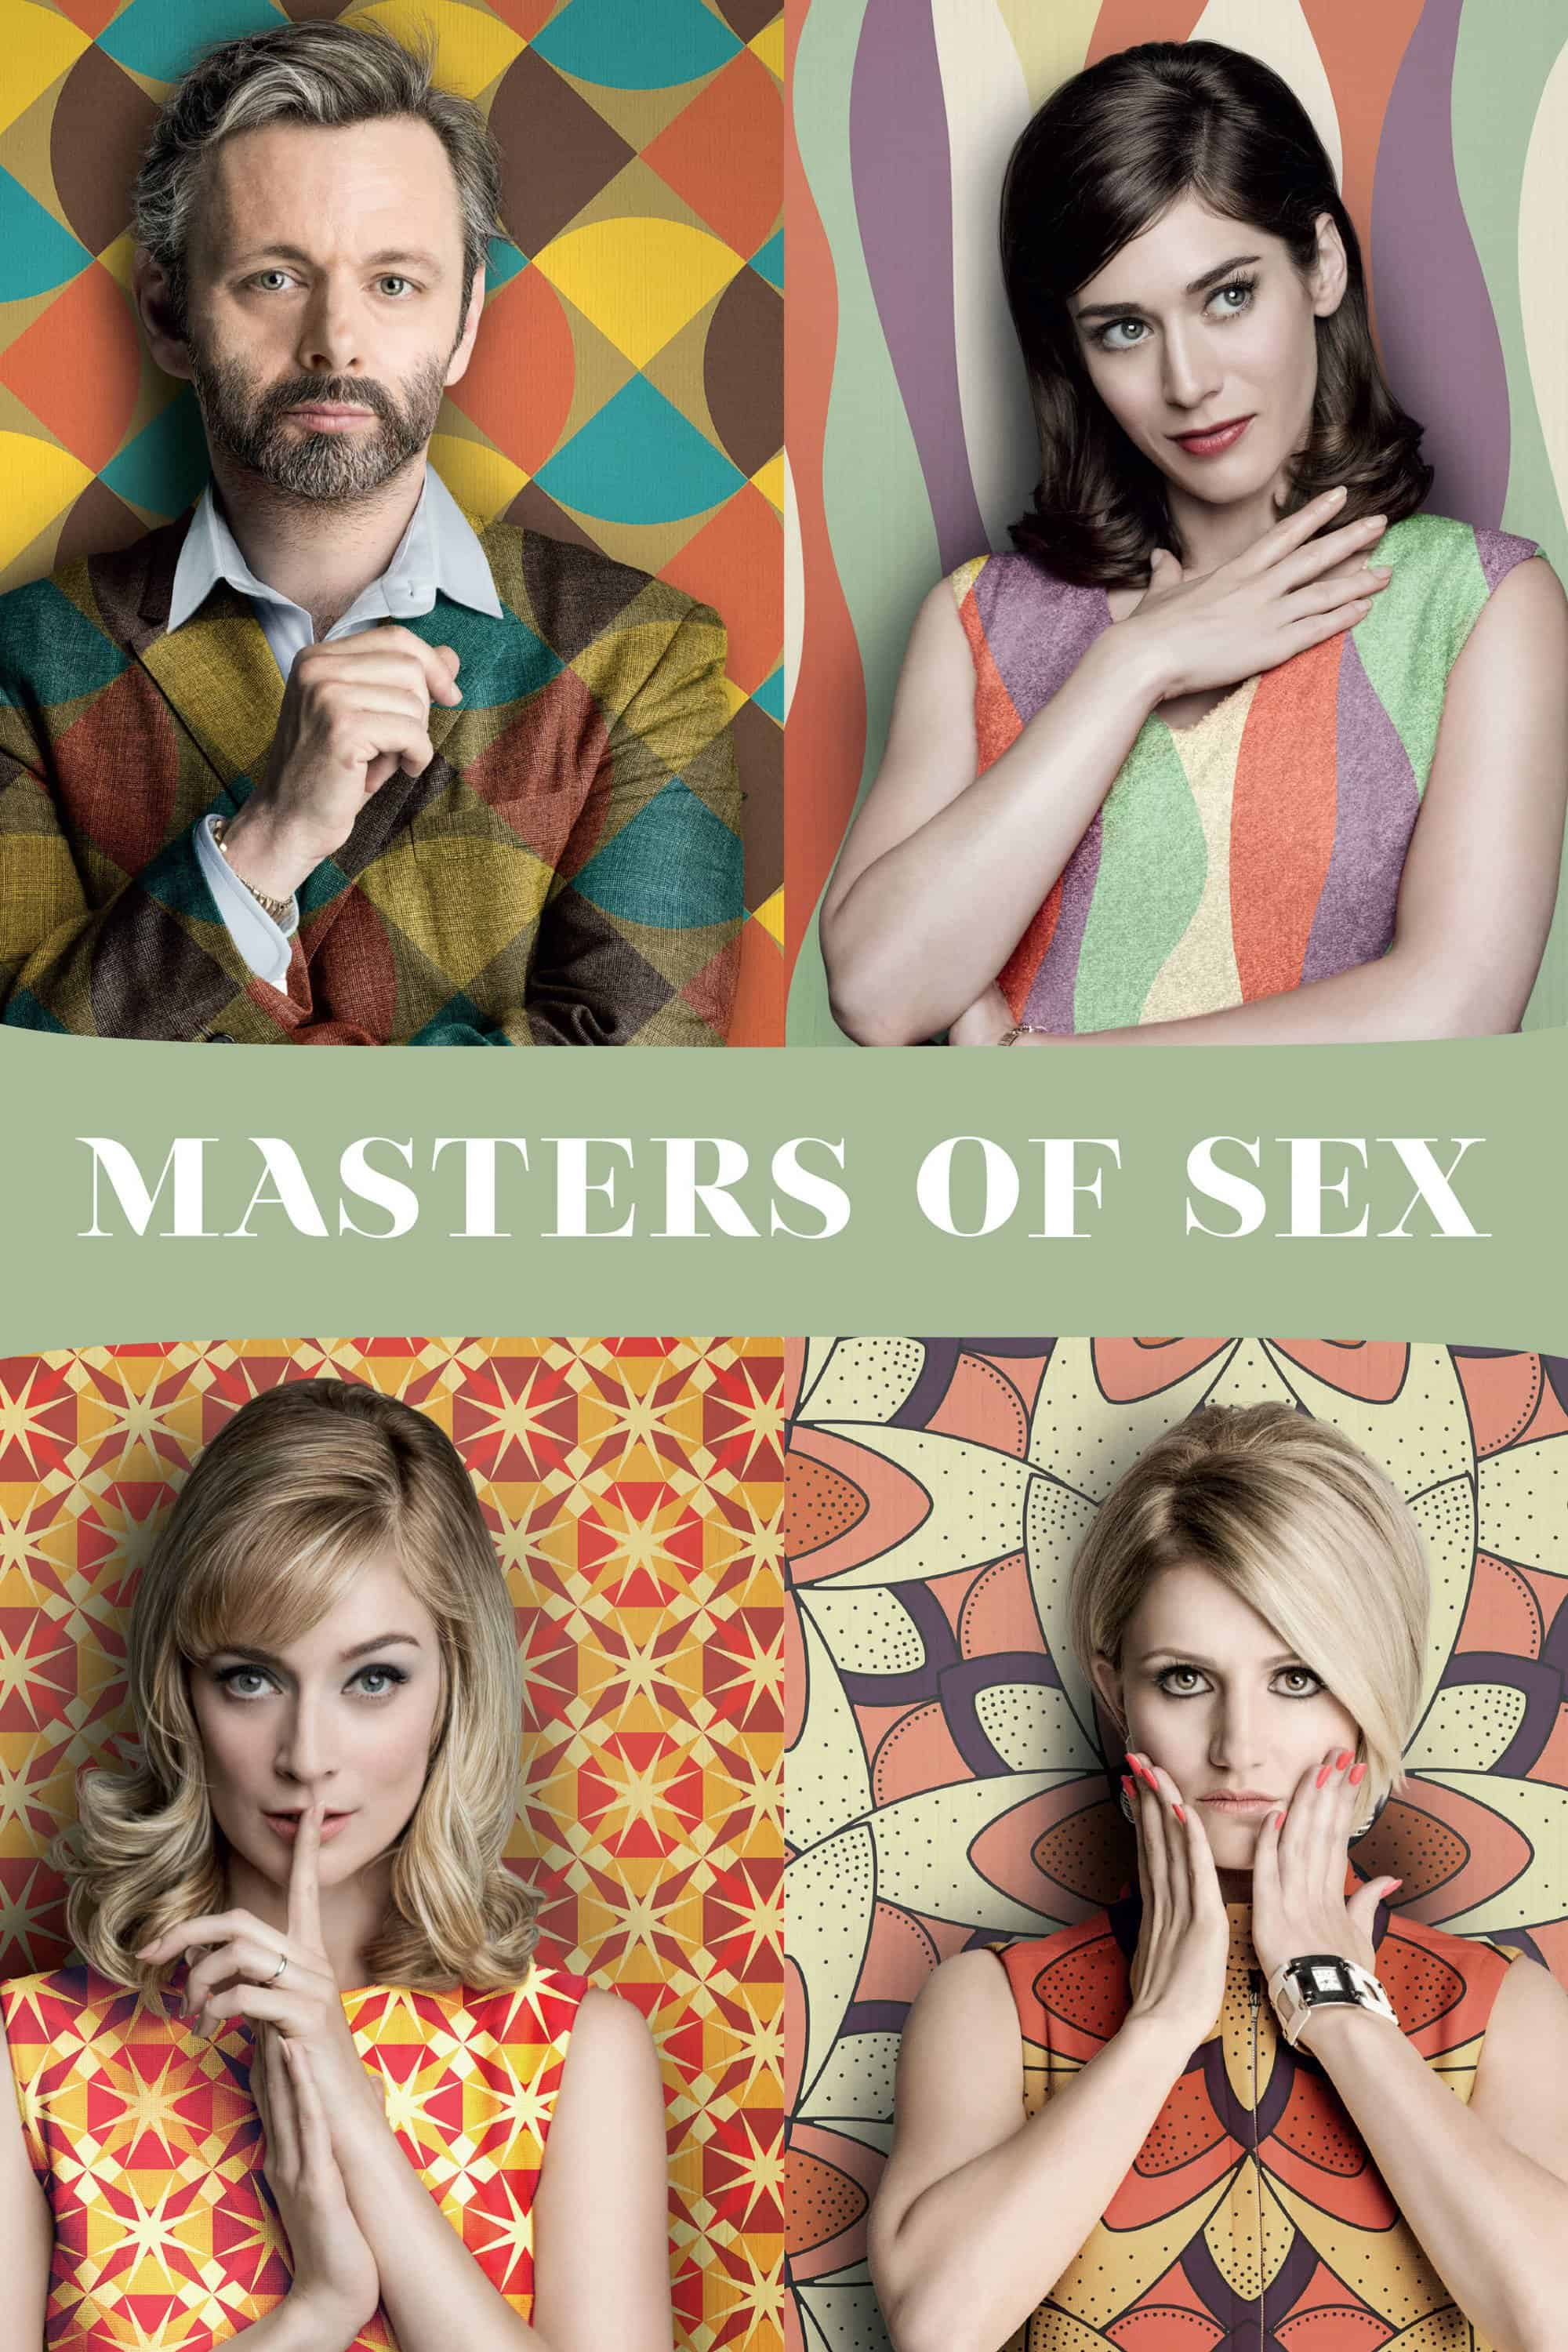 Masters of Sex, 2013